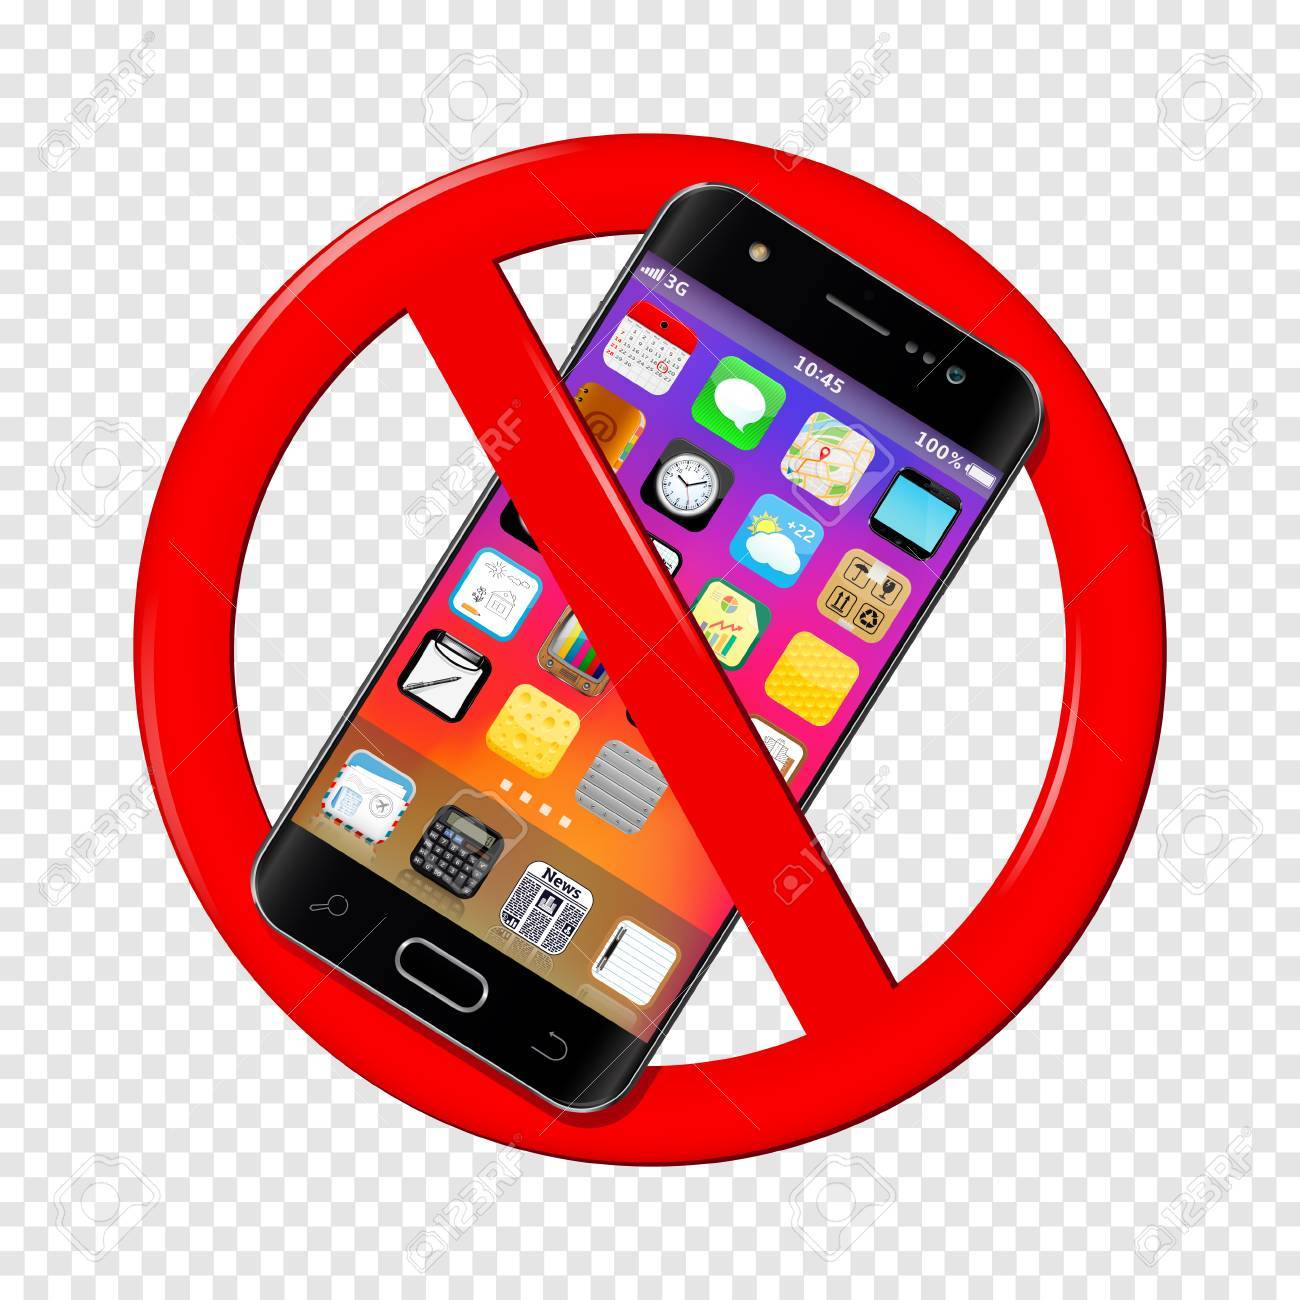 No cell phone sign isolated on transparent illustration..